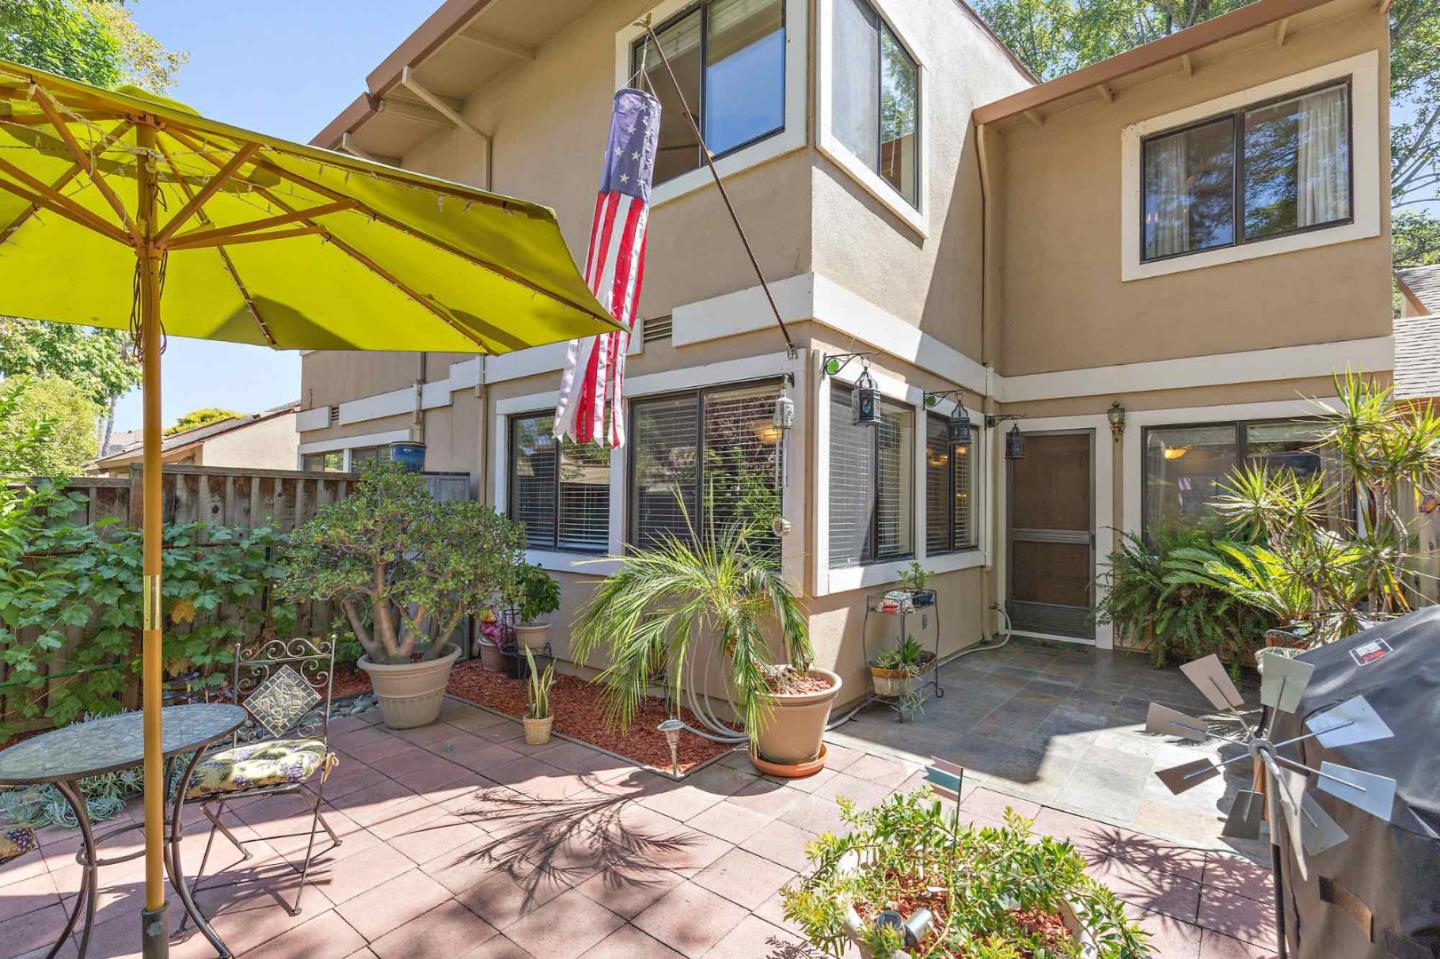 545 Cassatt Way San Jose, CA 95125 - MLS #: ML81722274